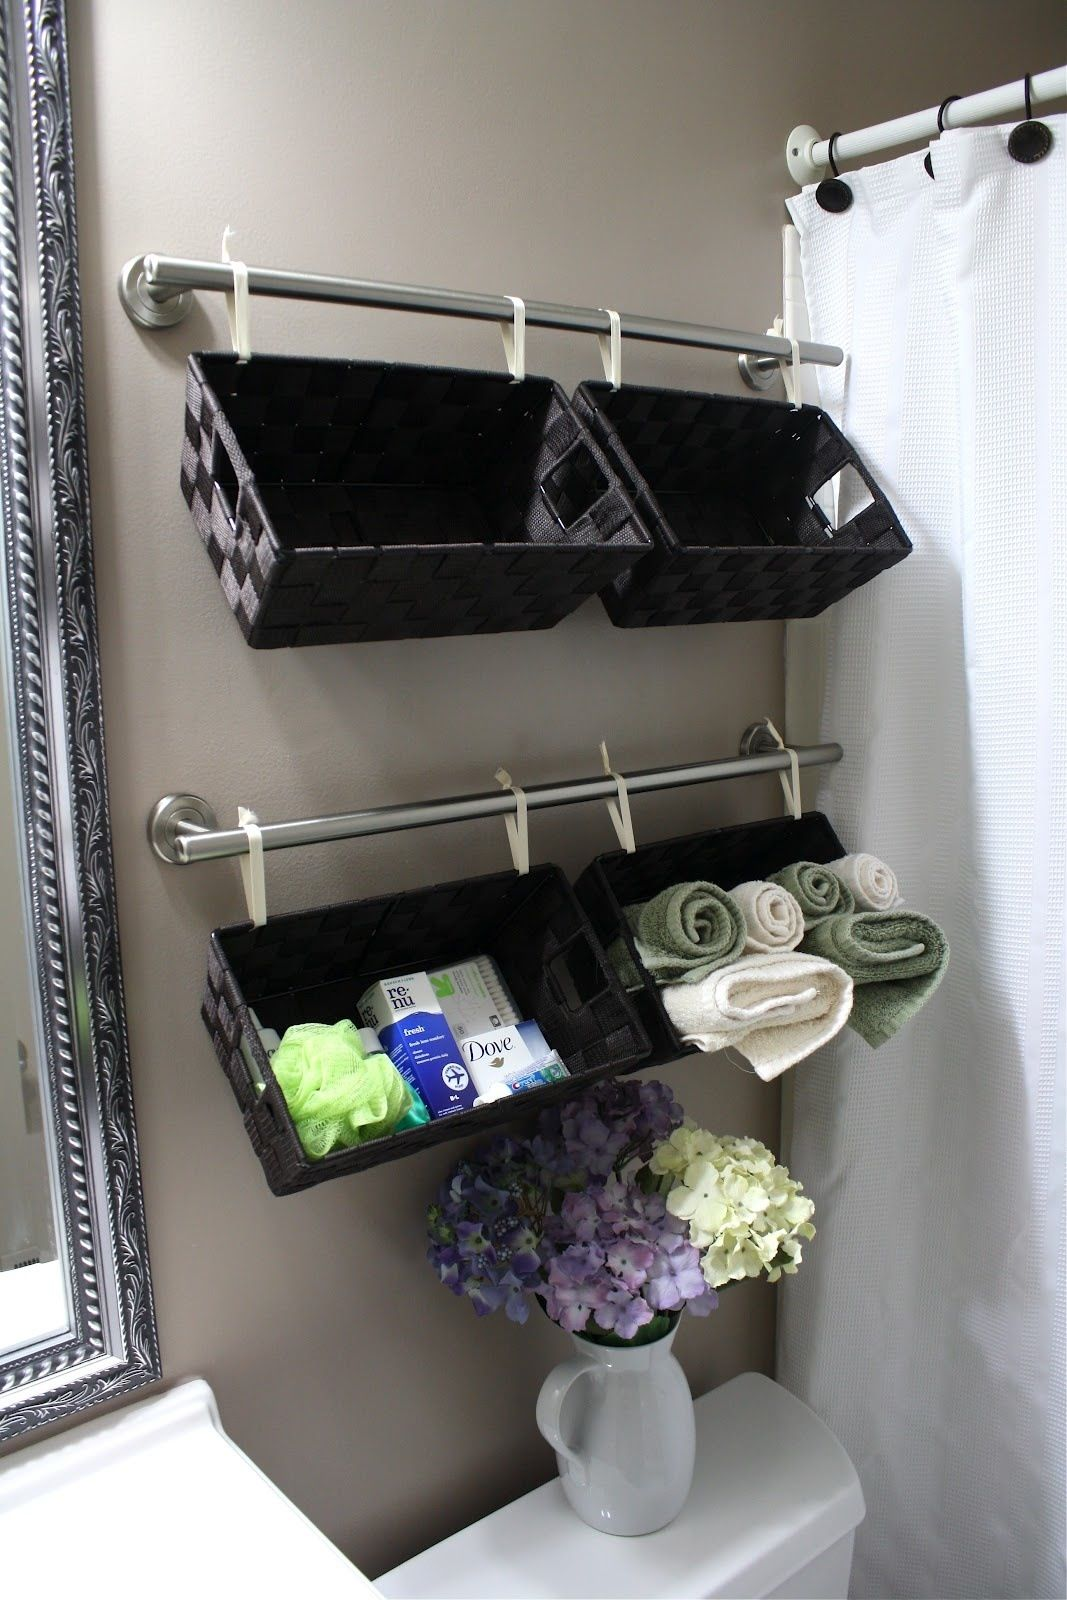 Bathroom organization Perfect for Small bathrooms